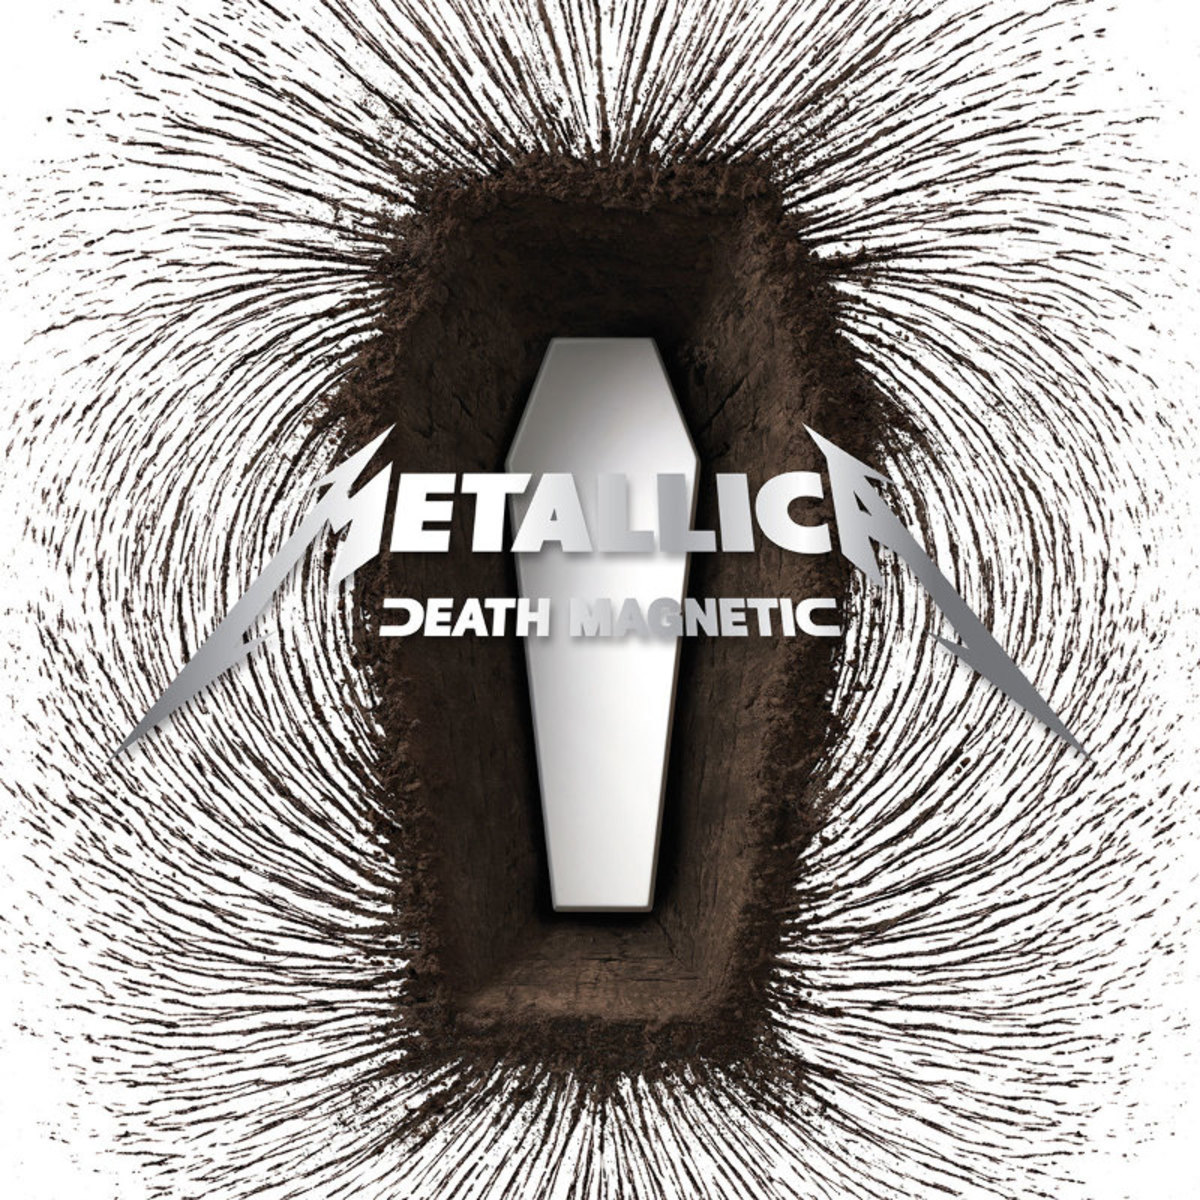 Metallica Death Magnetic Album Review: A Look at Metallica's Death Magnetic Album Ten Years Later